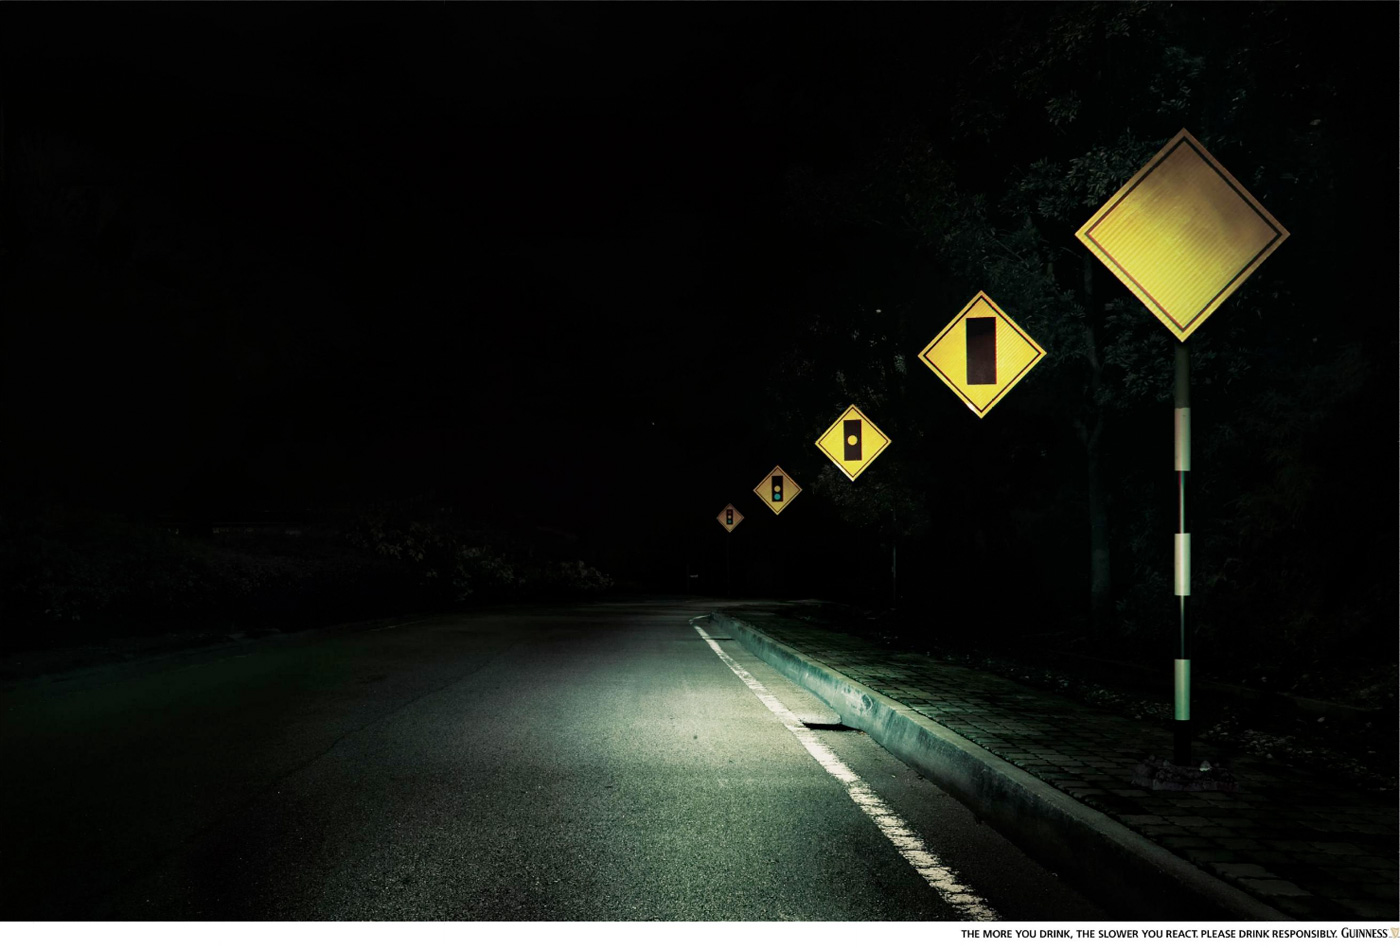 Guinness Outdoor Advert By Saatchi  for Traffic Light On Road At Night  157uhy